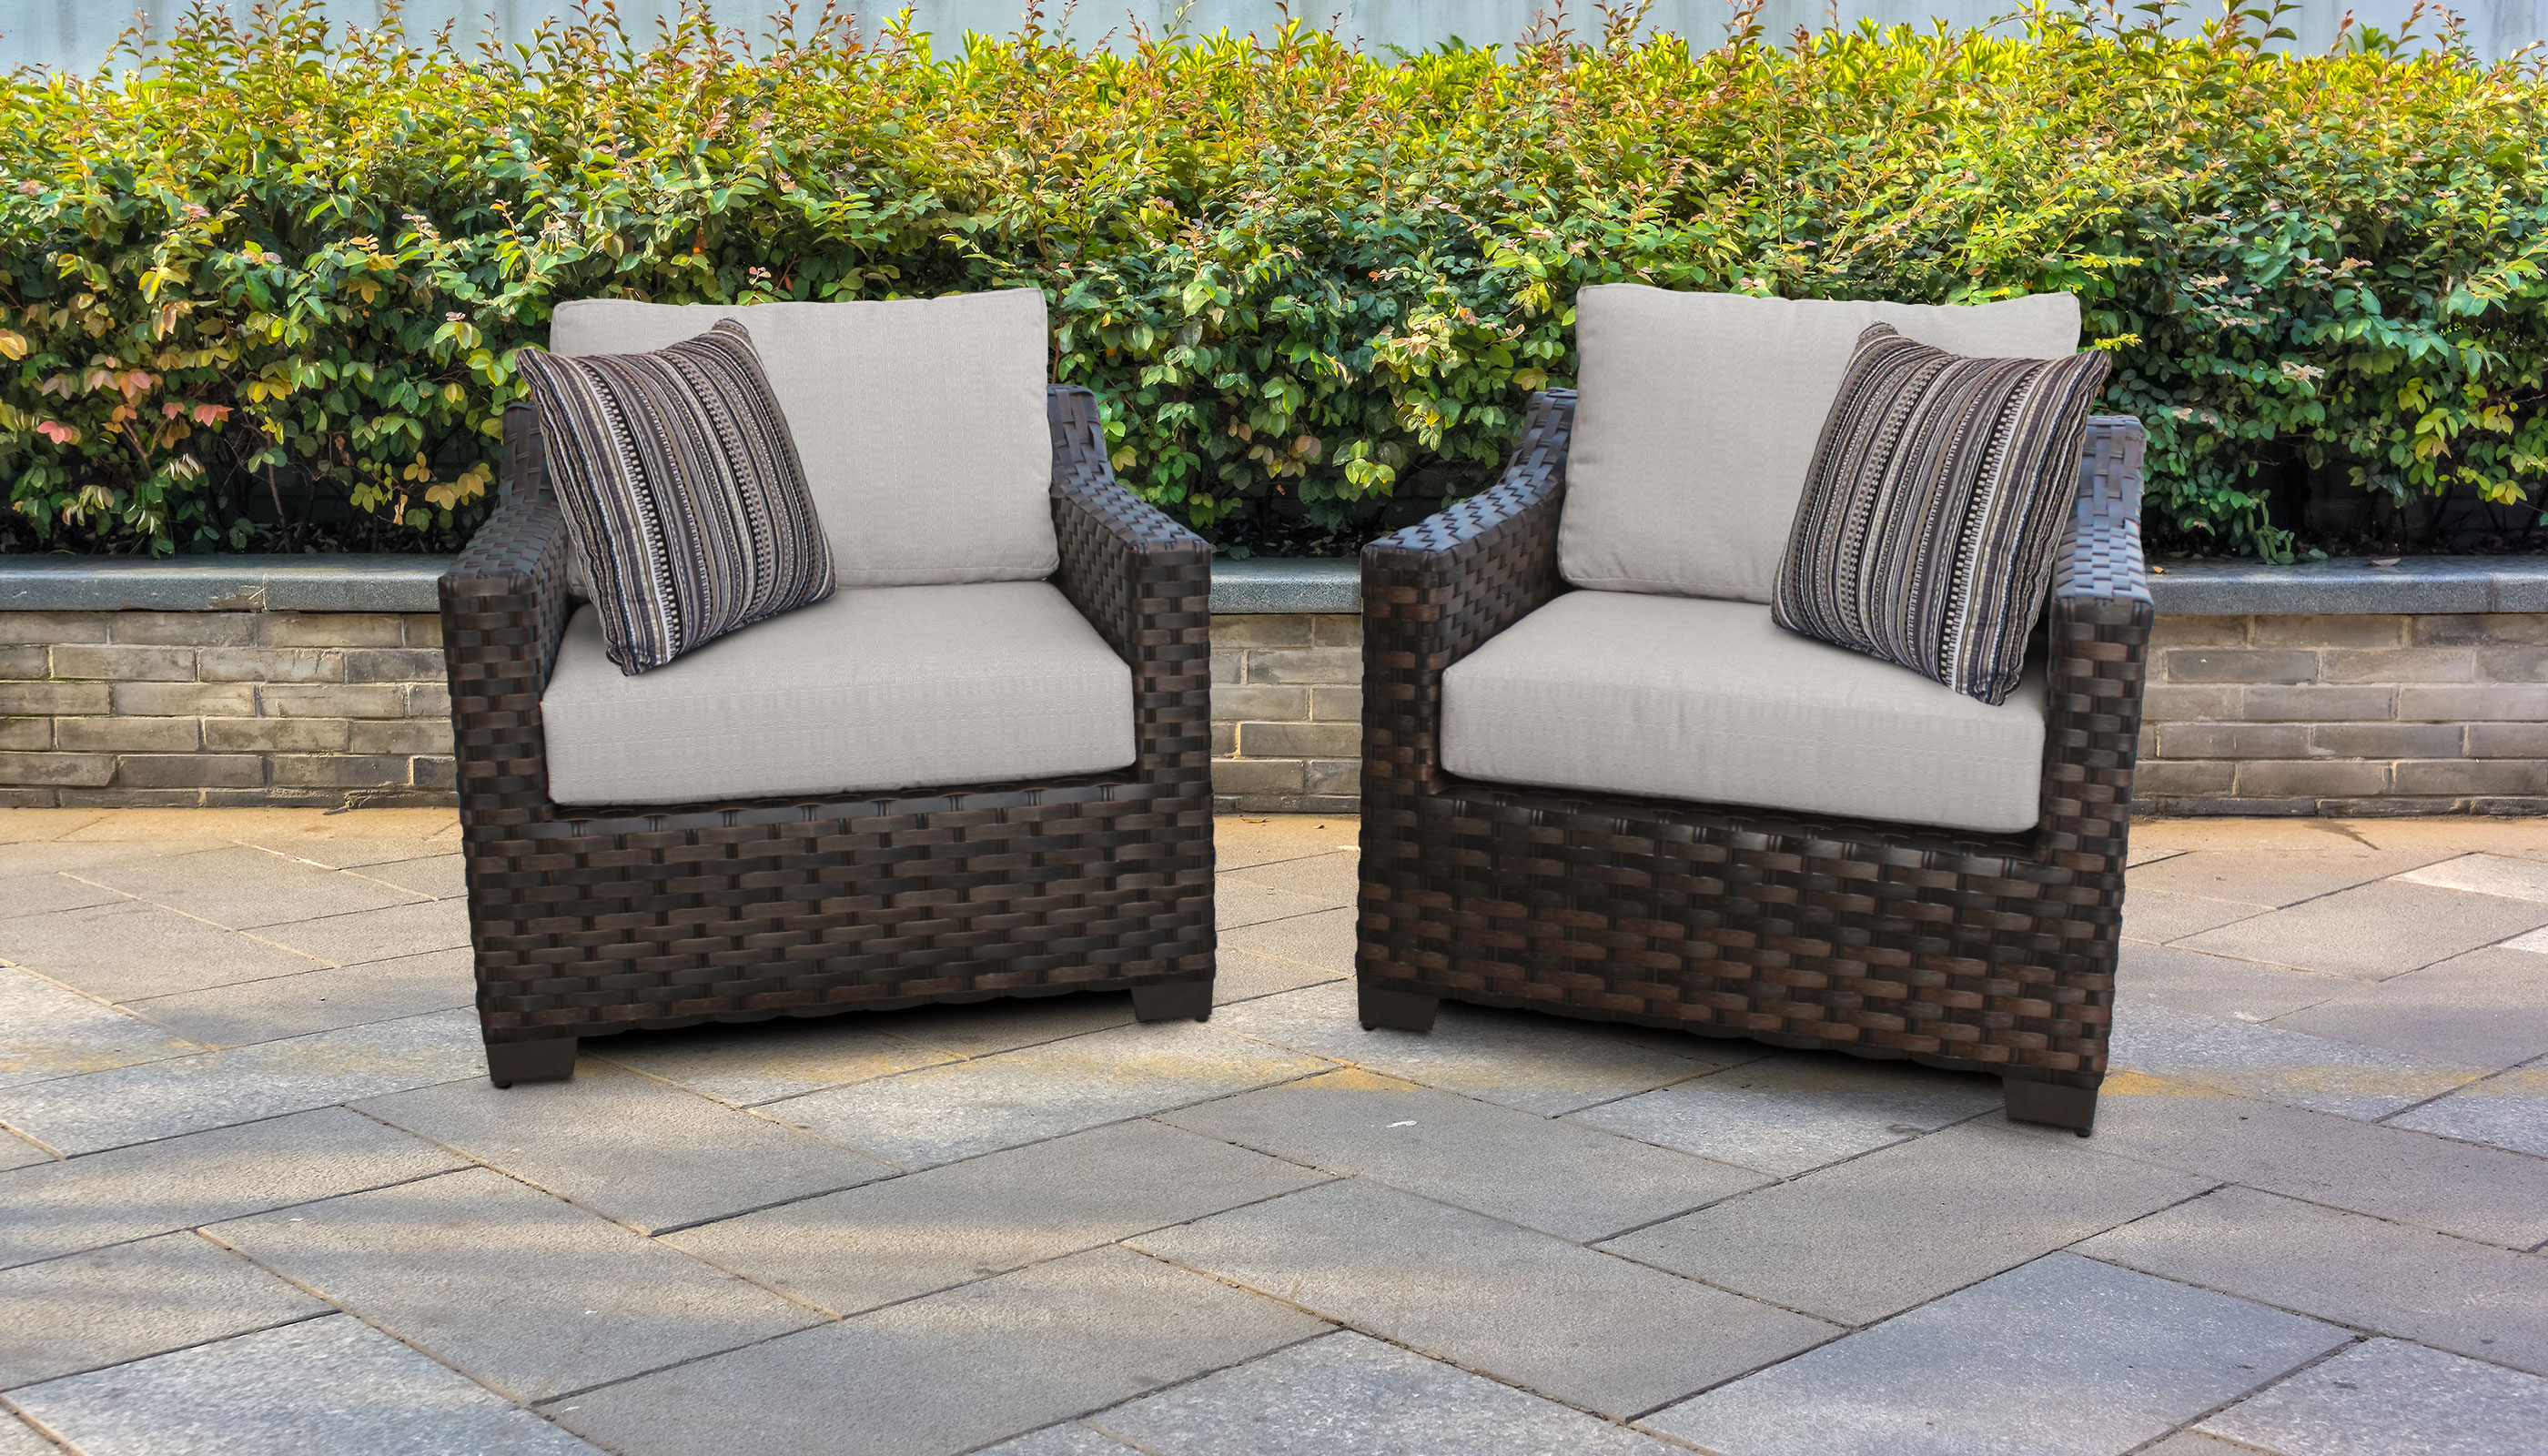 Well Known Oreland Patio Sofas With Cushions Regarding River 2 Piece Outdoor Wicker Patio Furniture Set 02b (View 18 of 20)